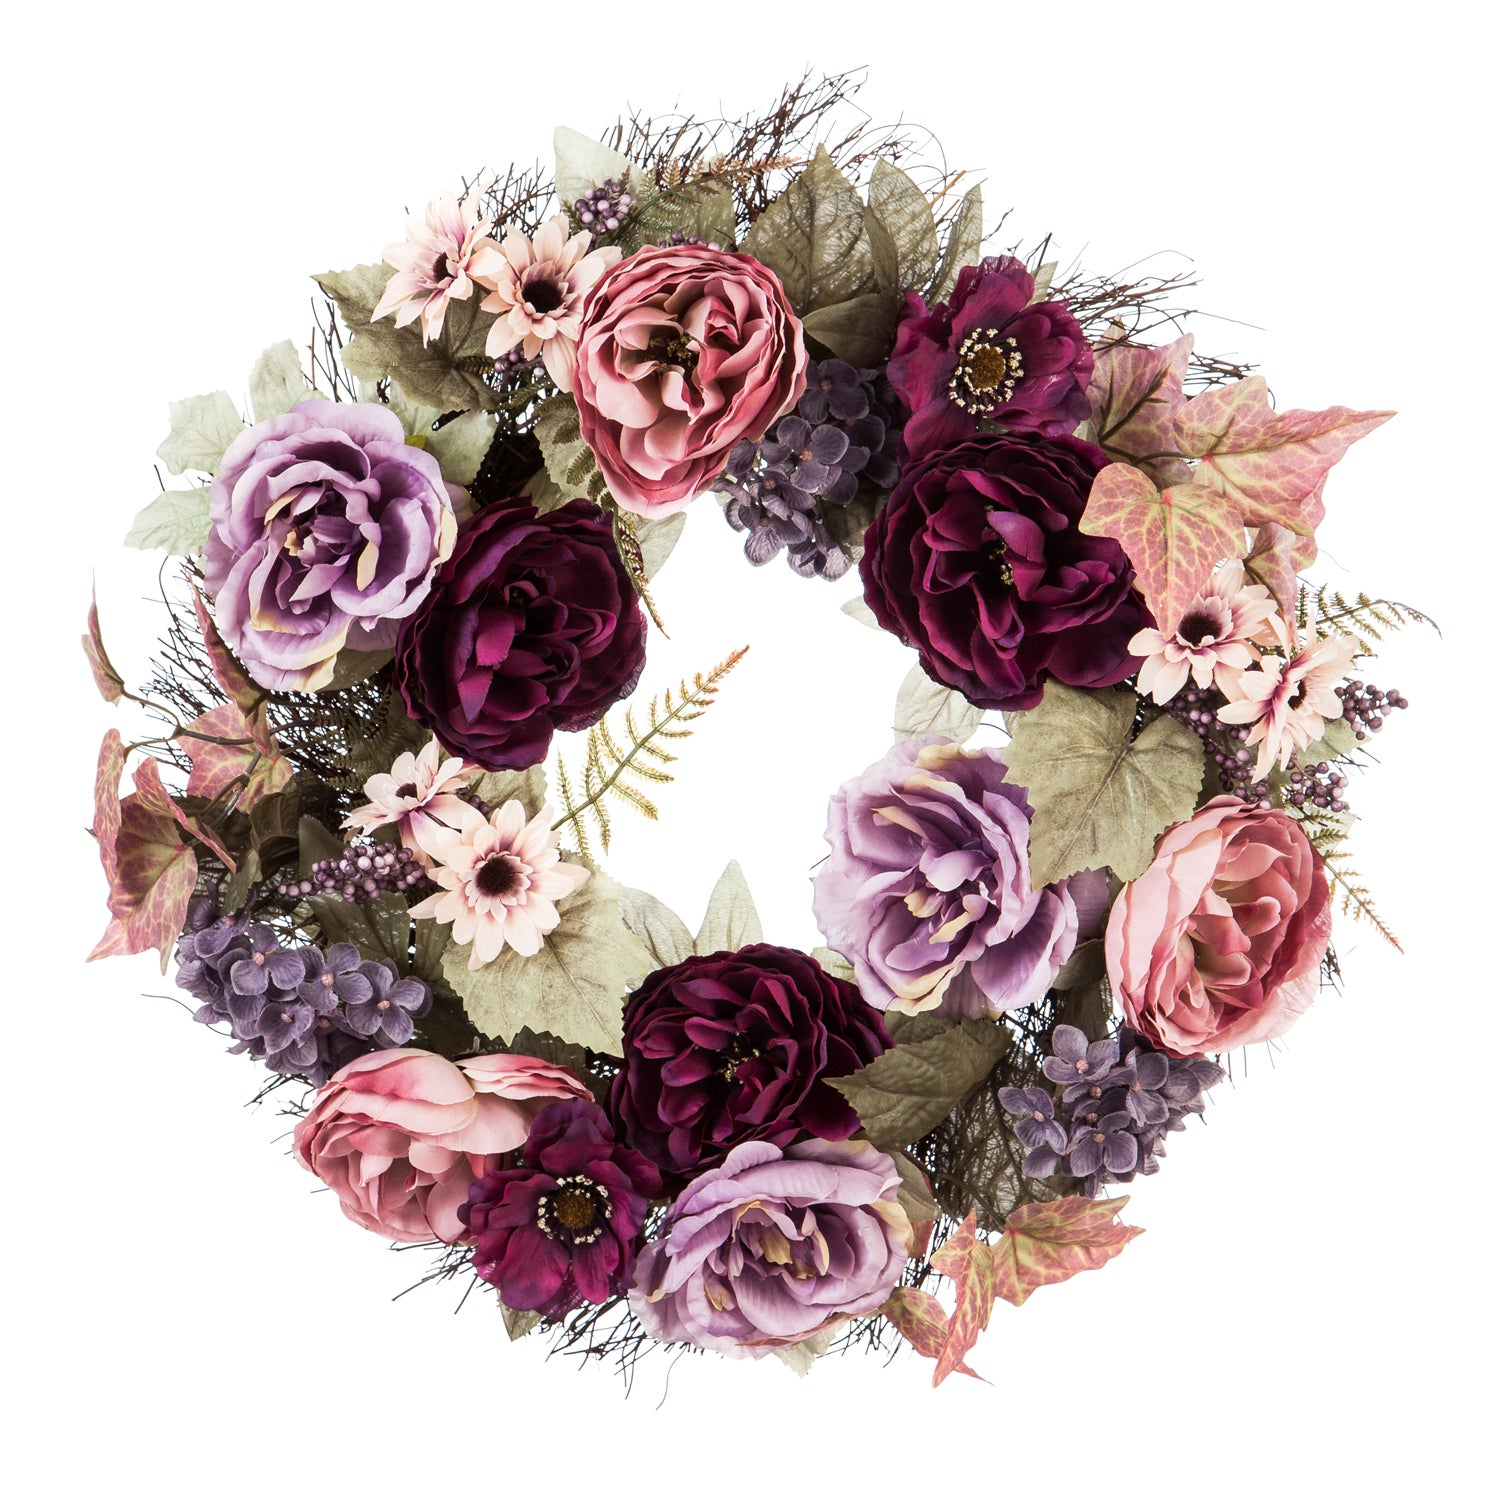 Vine Wreath with Roses, Hydrangeas, and Berries